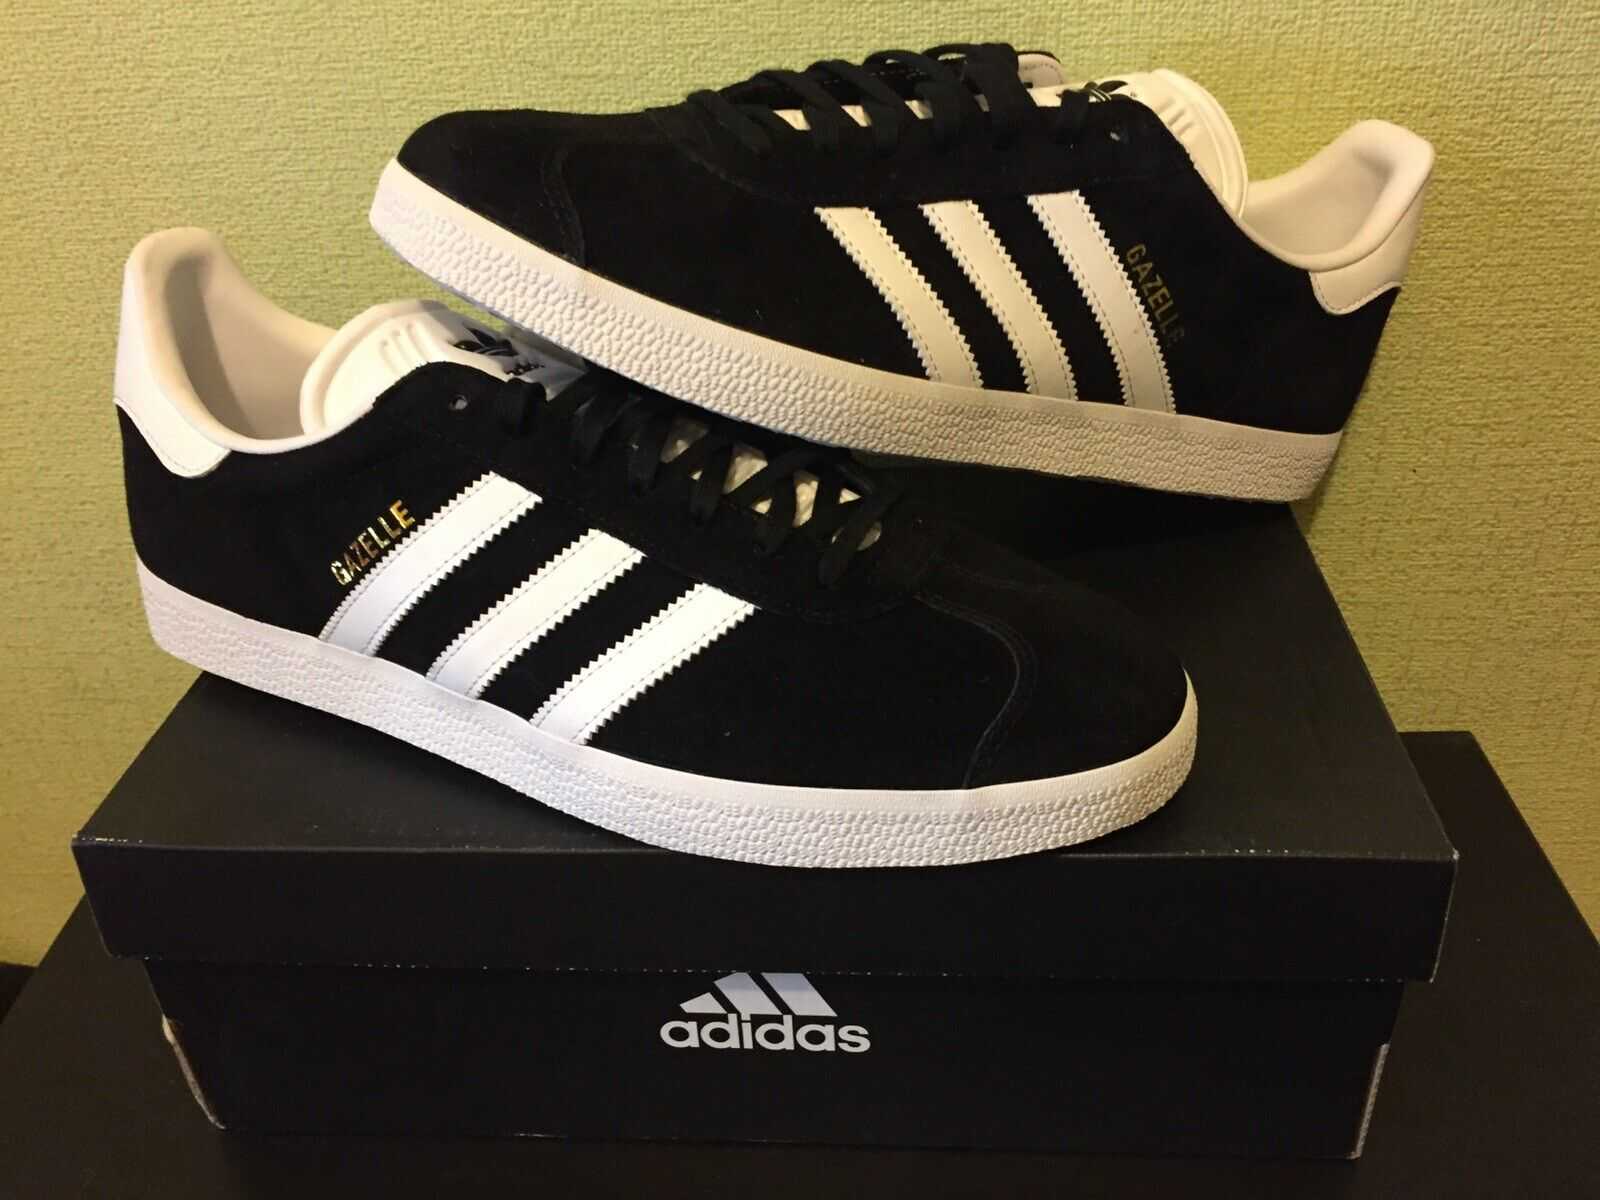 Adidas Adidas Adidas sneakers gazelle originals new us size 10,5 4aa523